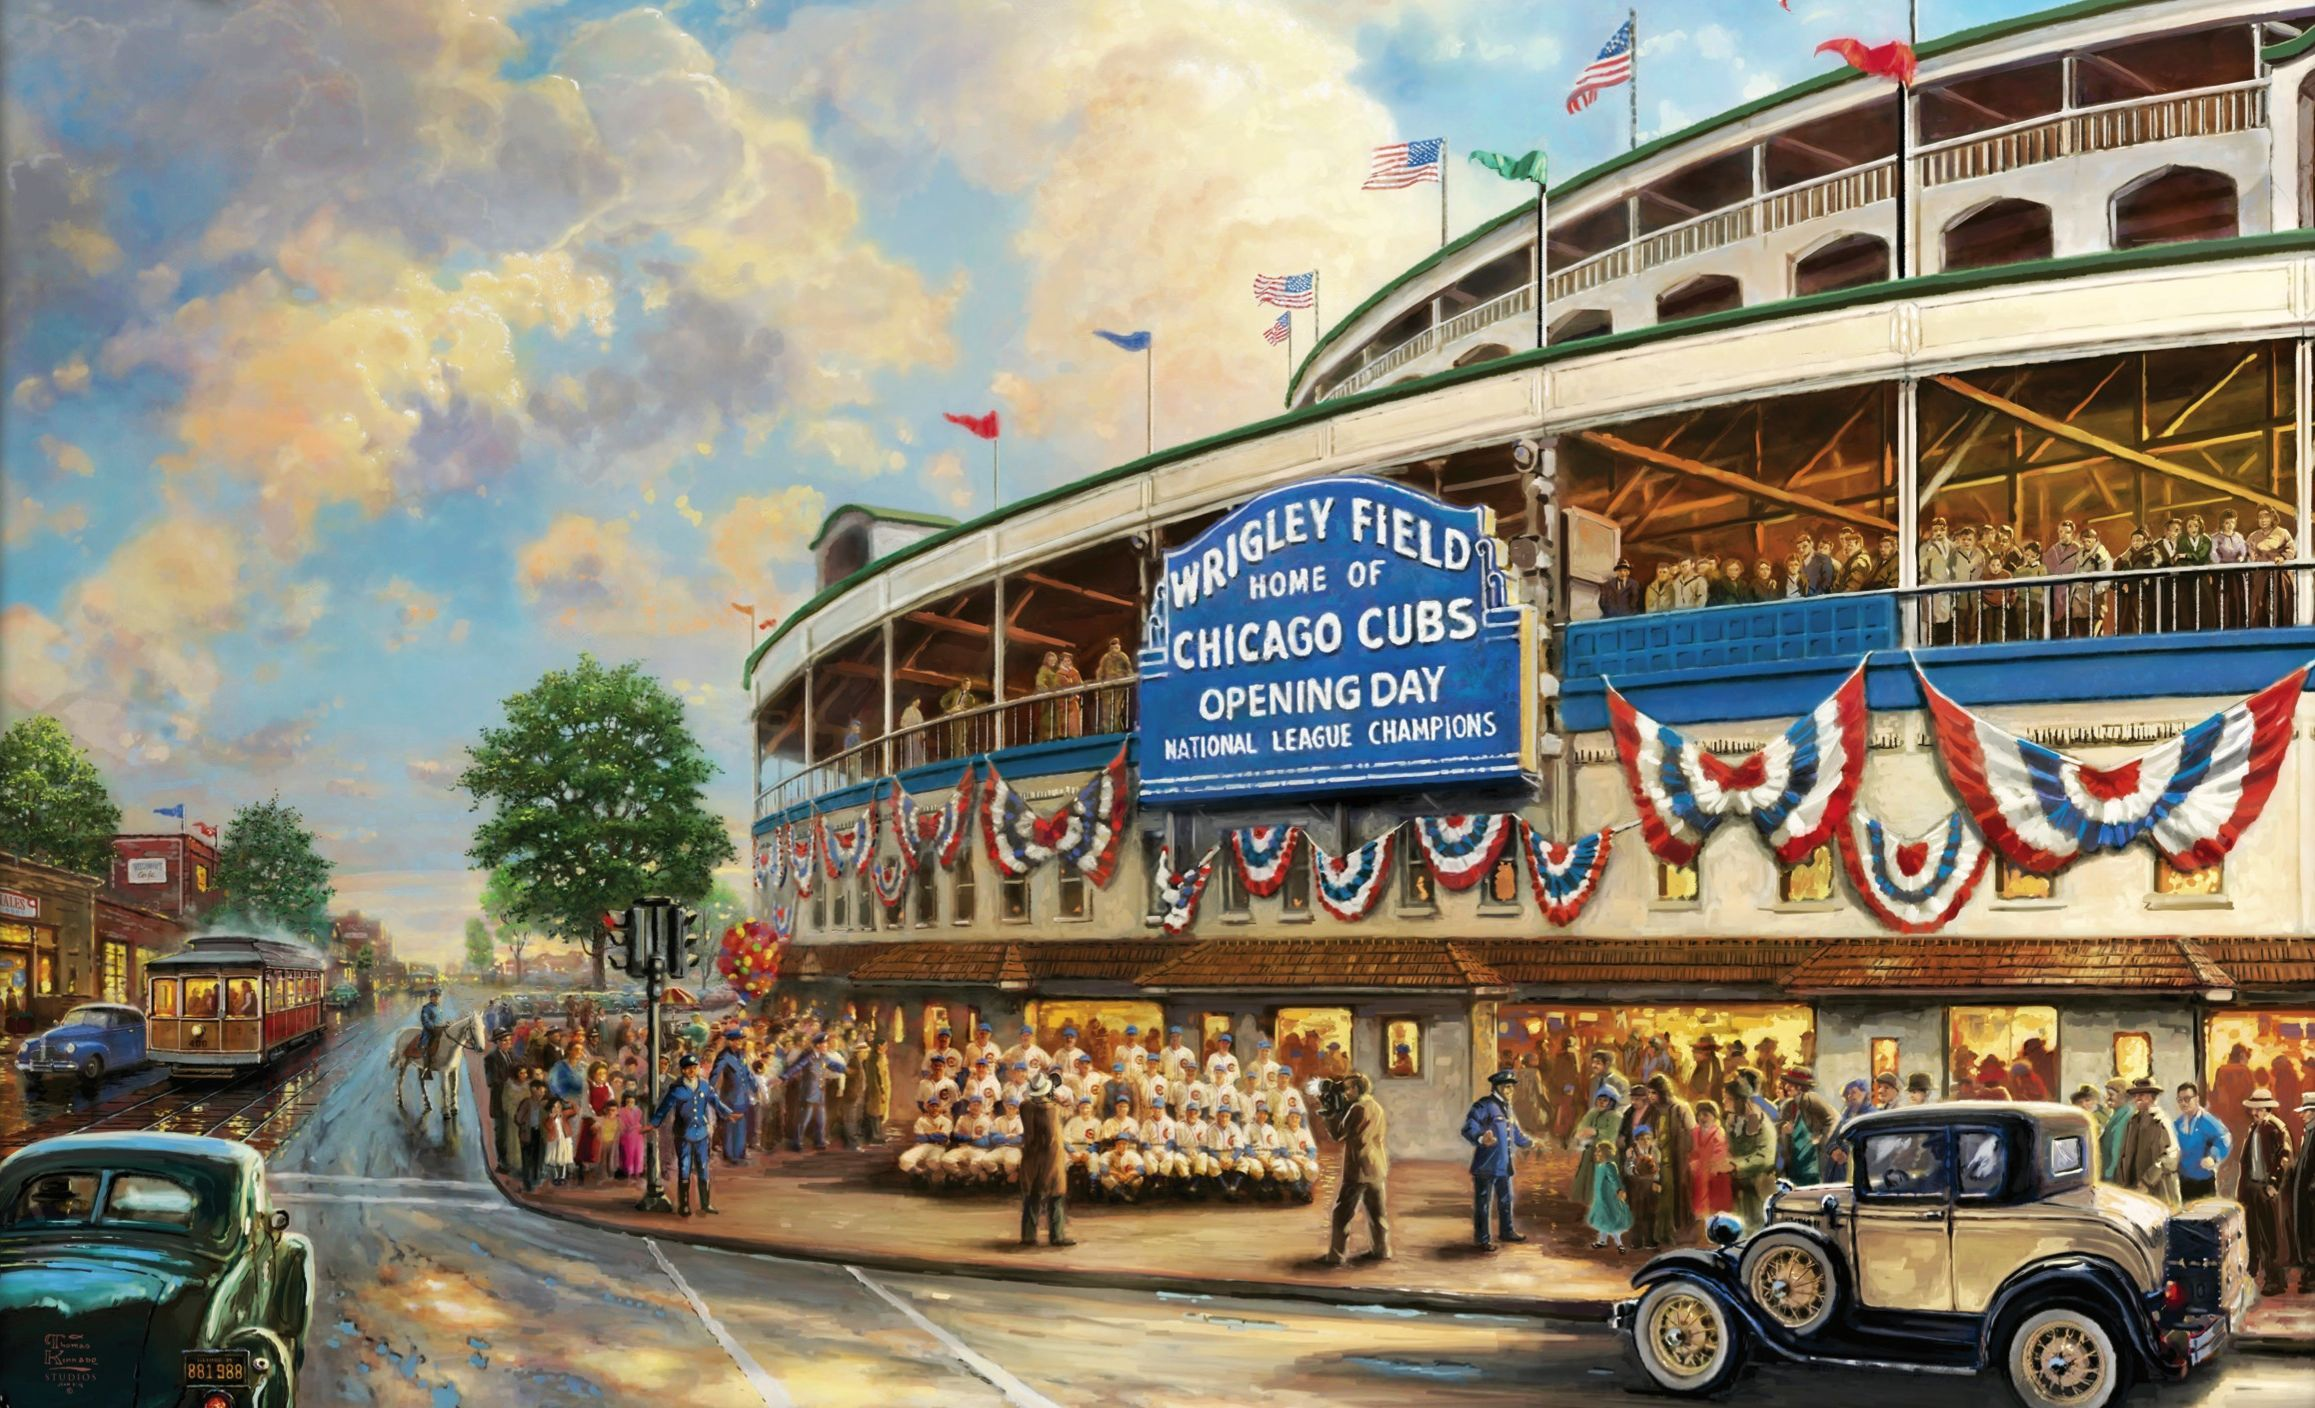 Home Of Chicago Cubs Street Cars Vintage 1777450 Wrigley Field Thomas Kinkade Chicago Cubs Wallpaper